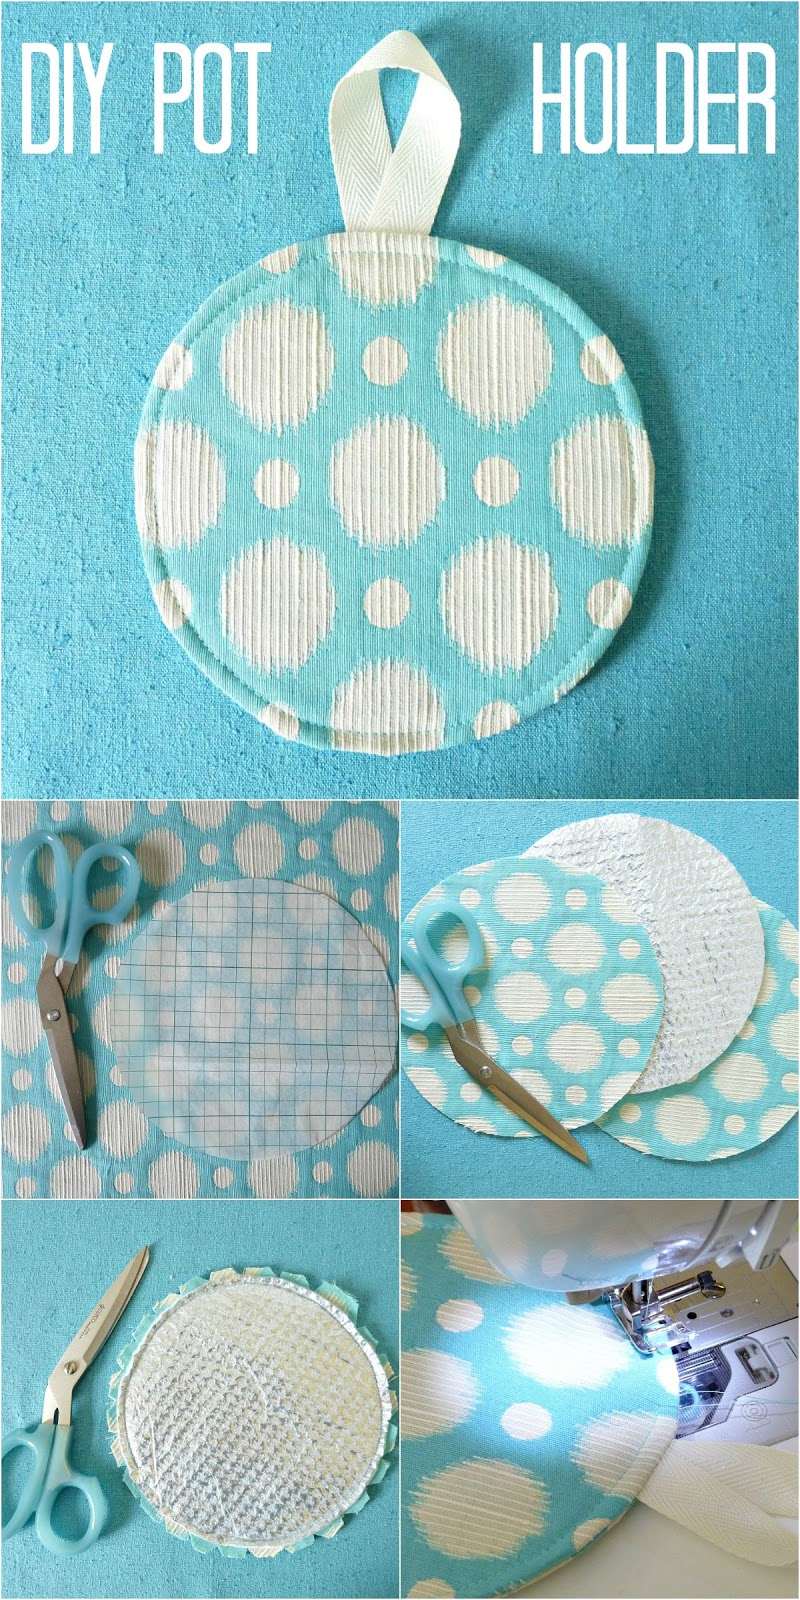 How to make a pot holder with heat shield material